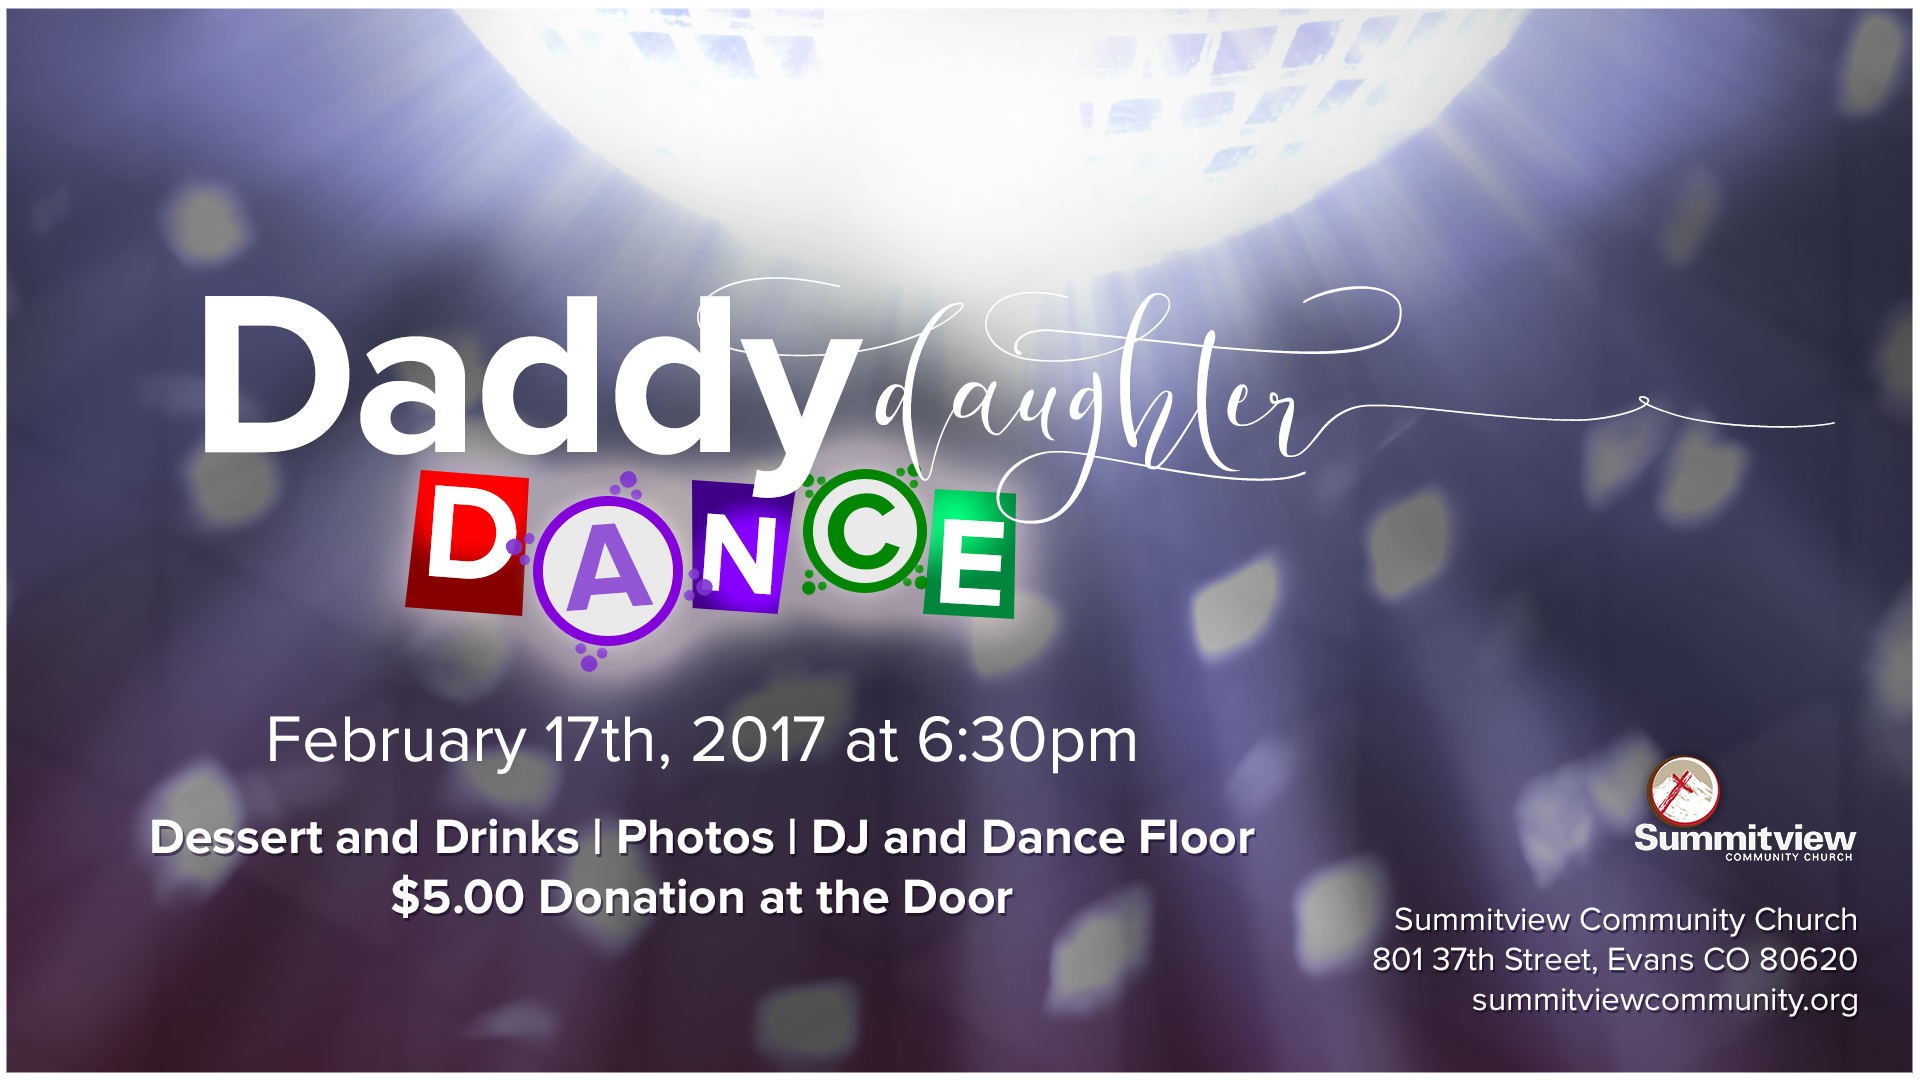 daddy daughter dance banner image